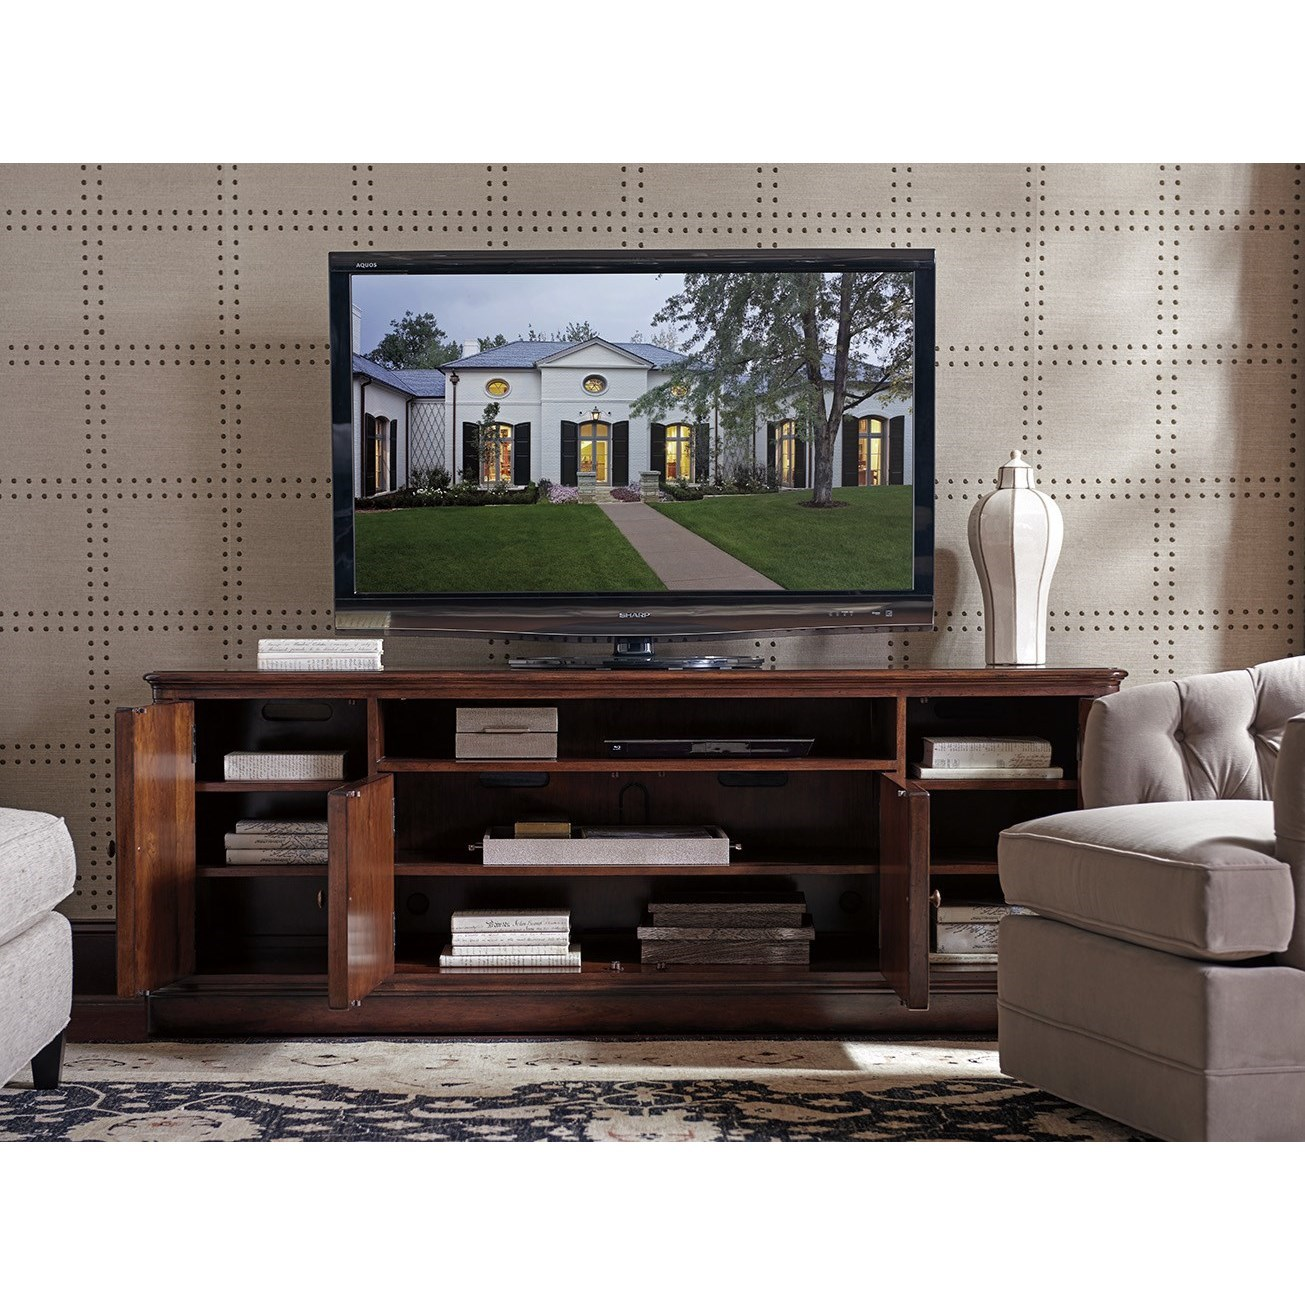 Sligh Richmond Hill Waycroft Tv Stand With Four Doors And